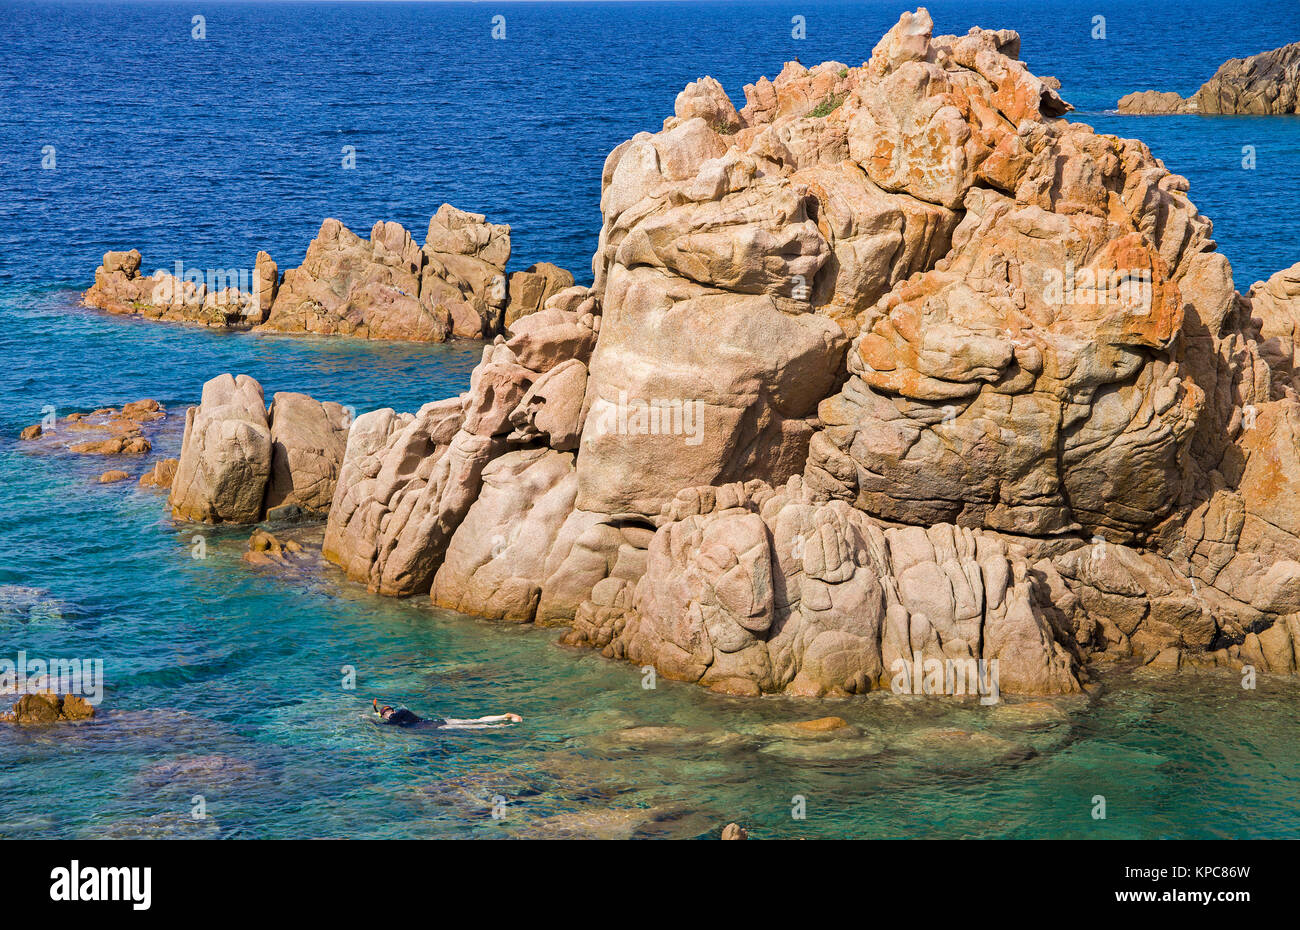 Snorkeler at porphyry rocks, Costa Paradiso, Sardinia, Italy, Mediterranean  sea, Europe - Stock Image